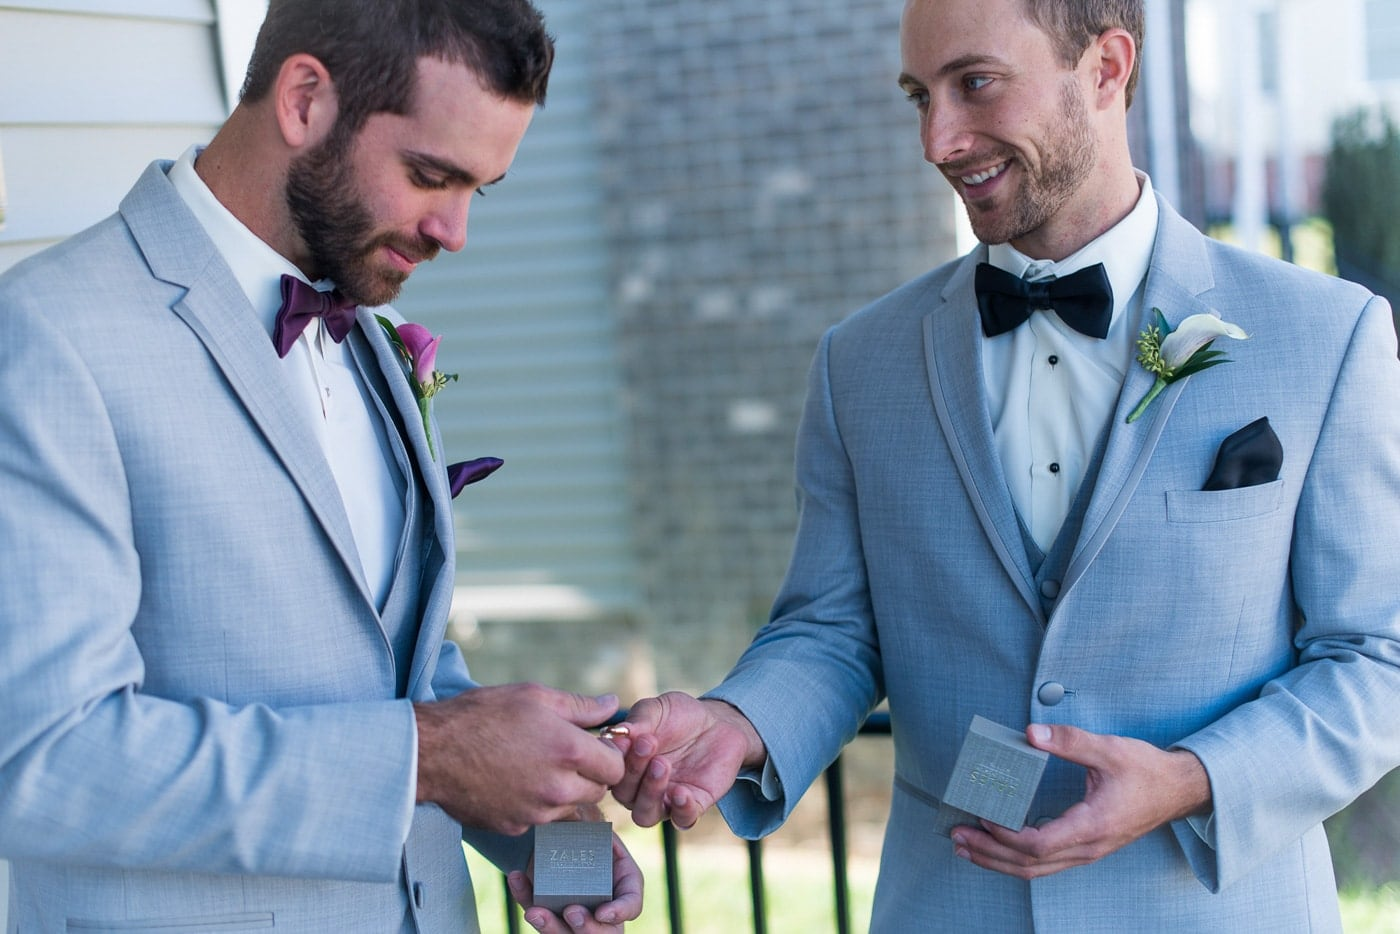 Groom Handing Off The Rings to The Best Man